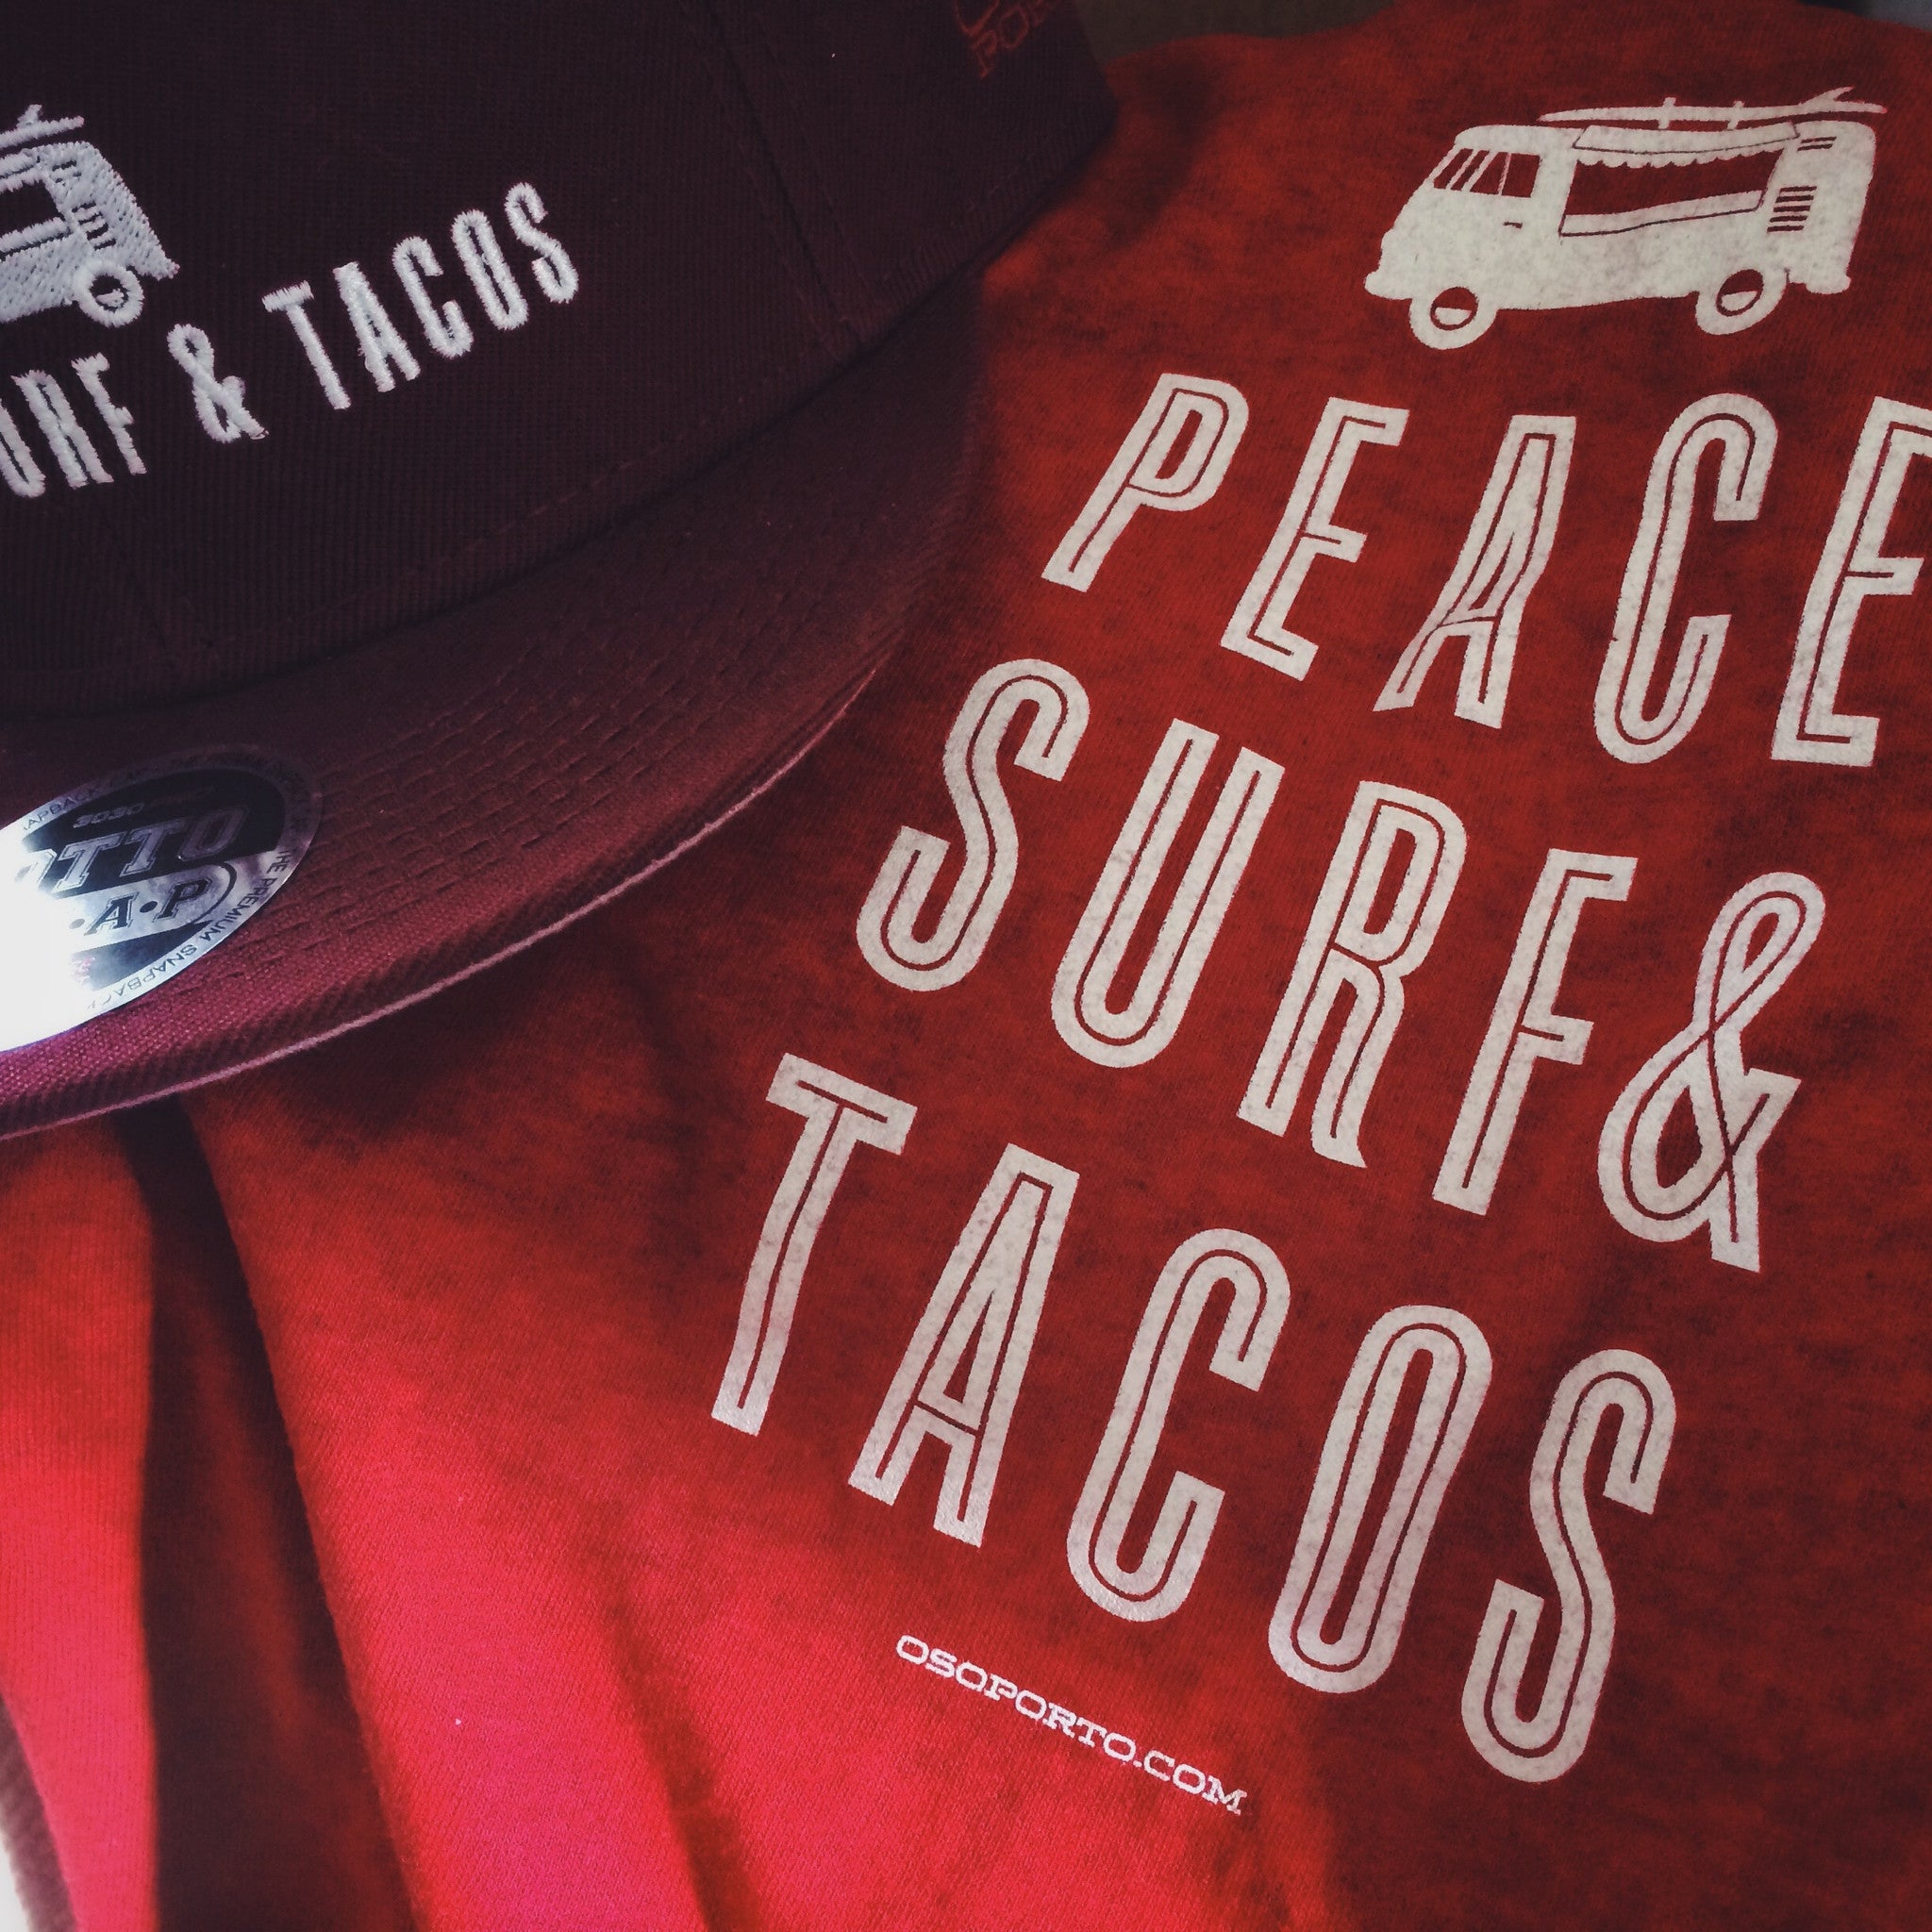 Peace Surf Tacos t-shirt and hat with vw kombi surf van bus. Peace Surf  Tacos t-shirt and hat with vw kombi surf van bus 6fc3b896af69